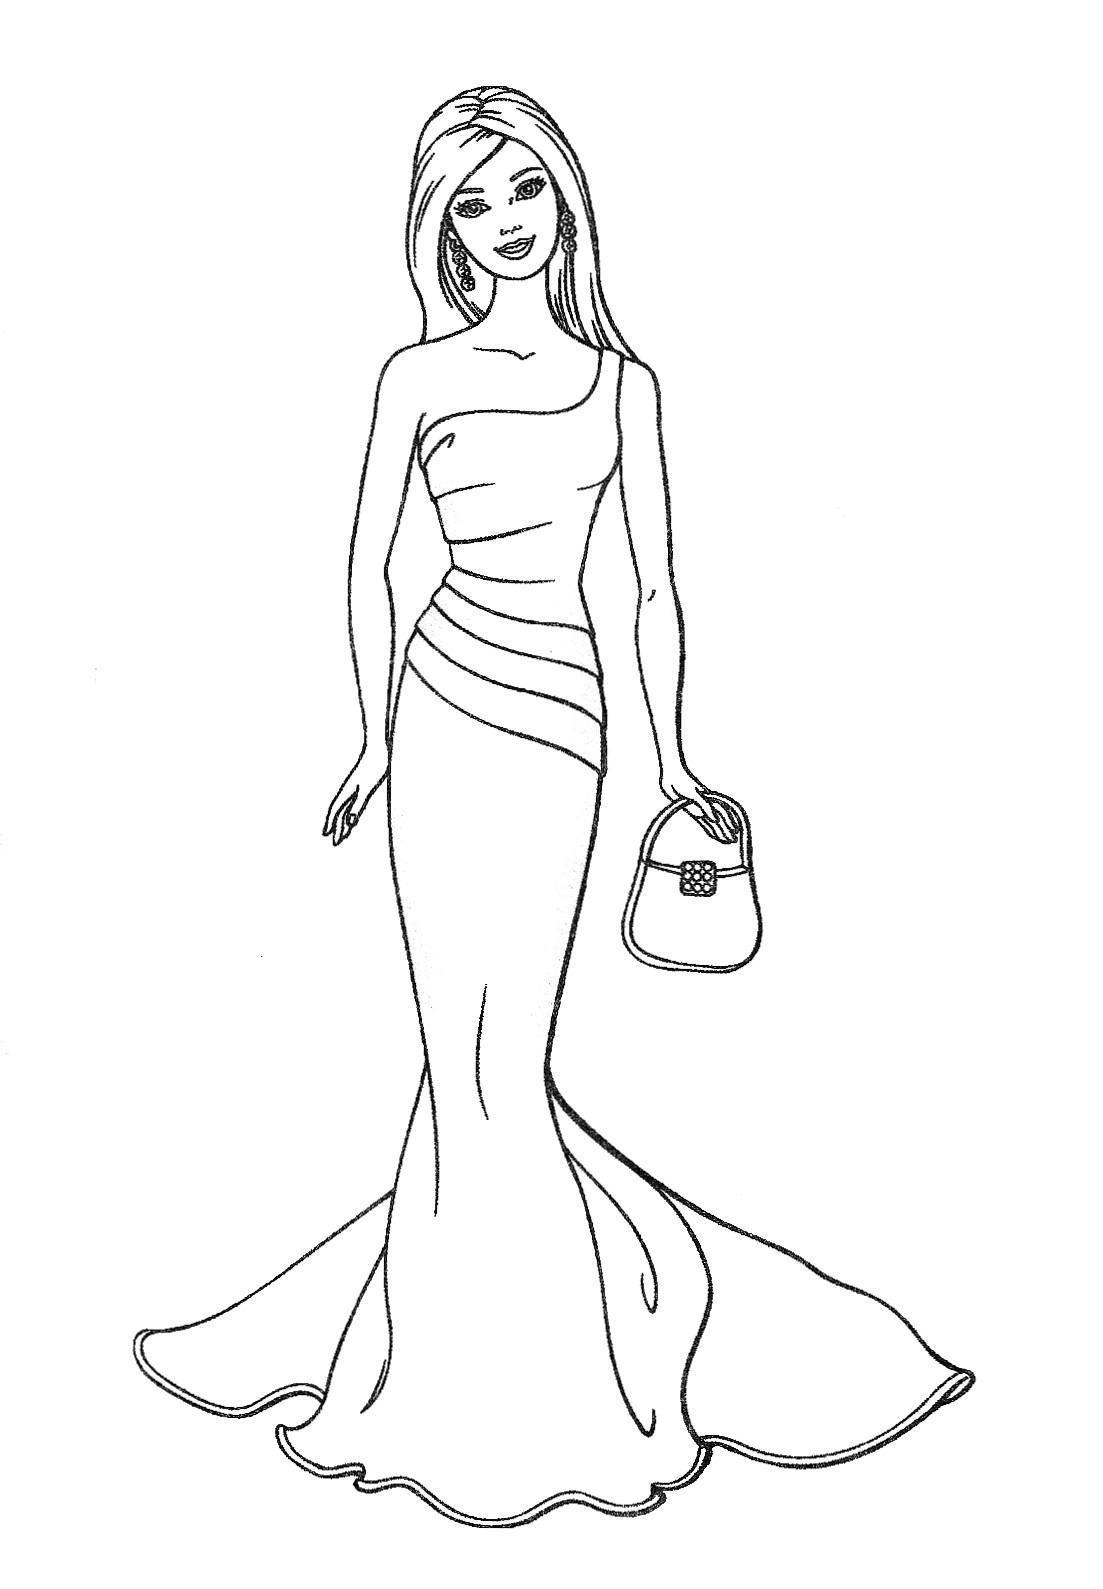 Coloriage barbie princesse noel - Barbie princesse coloriage ...